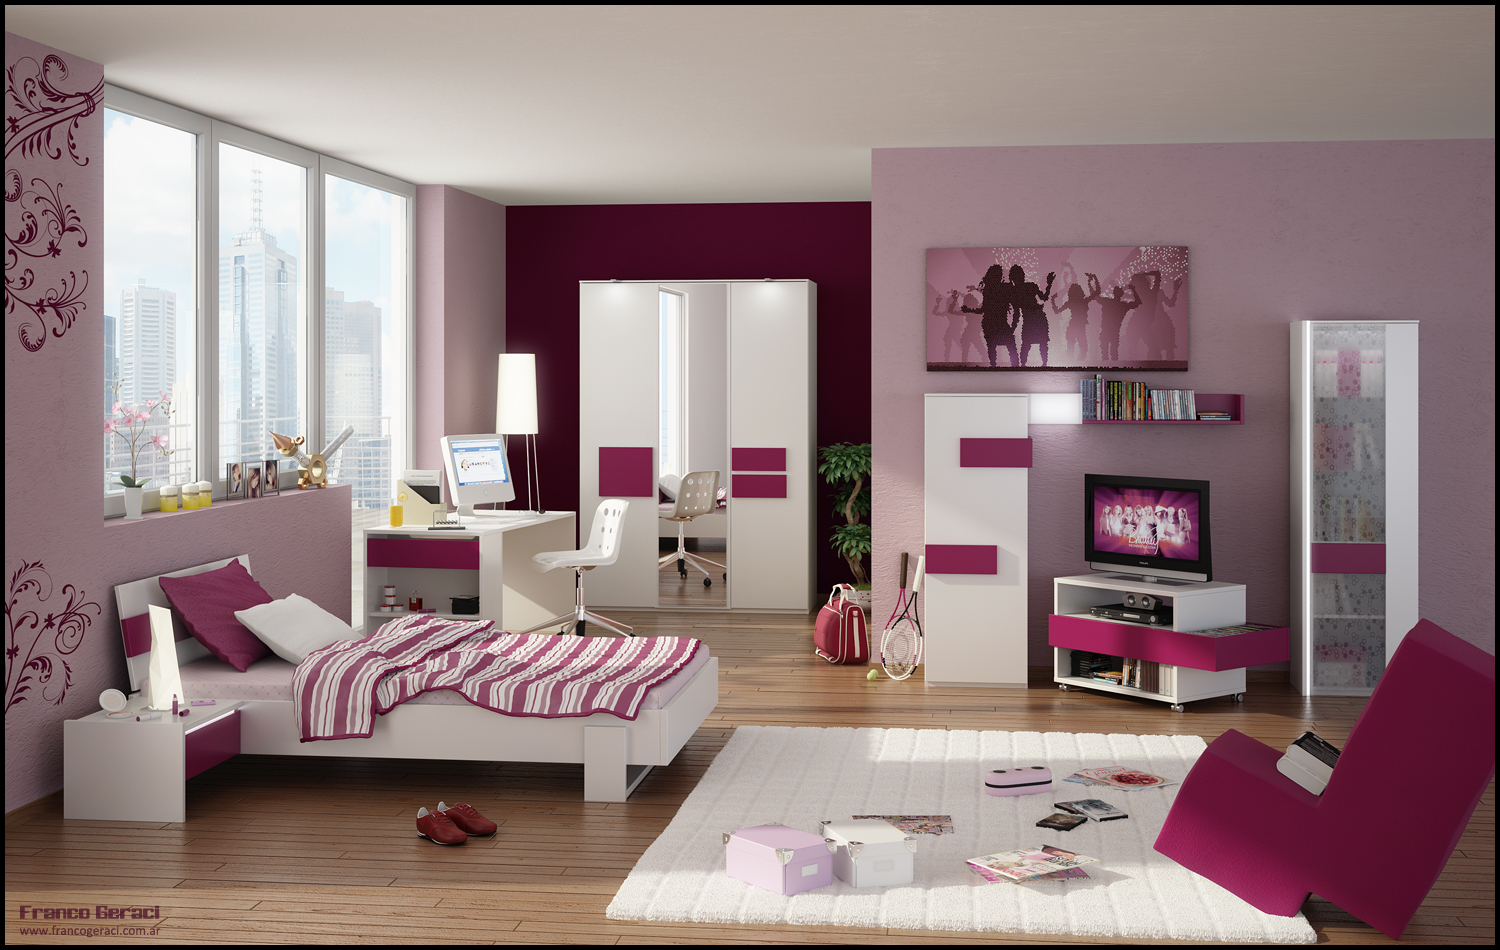 interior bedroom design ideas teenage bedroom. Exellent Bedroom 3dteen Room ByFEG Intended Interior Bedroom Design Ideas Teenage L